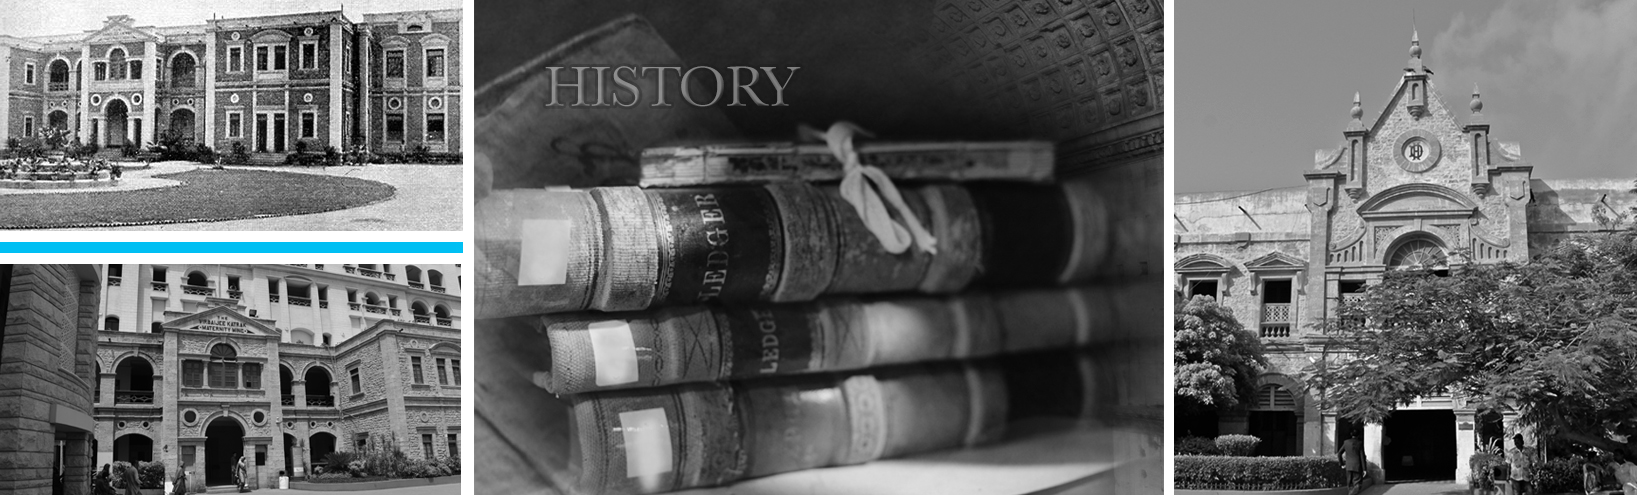 Brief History Header